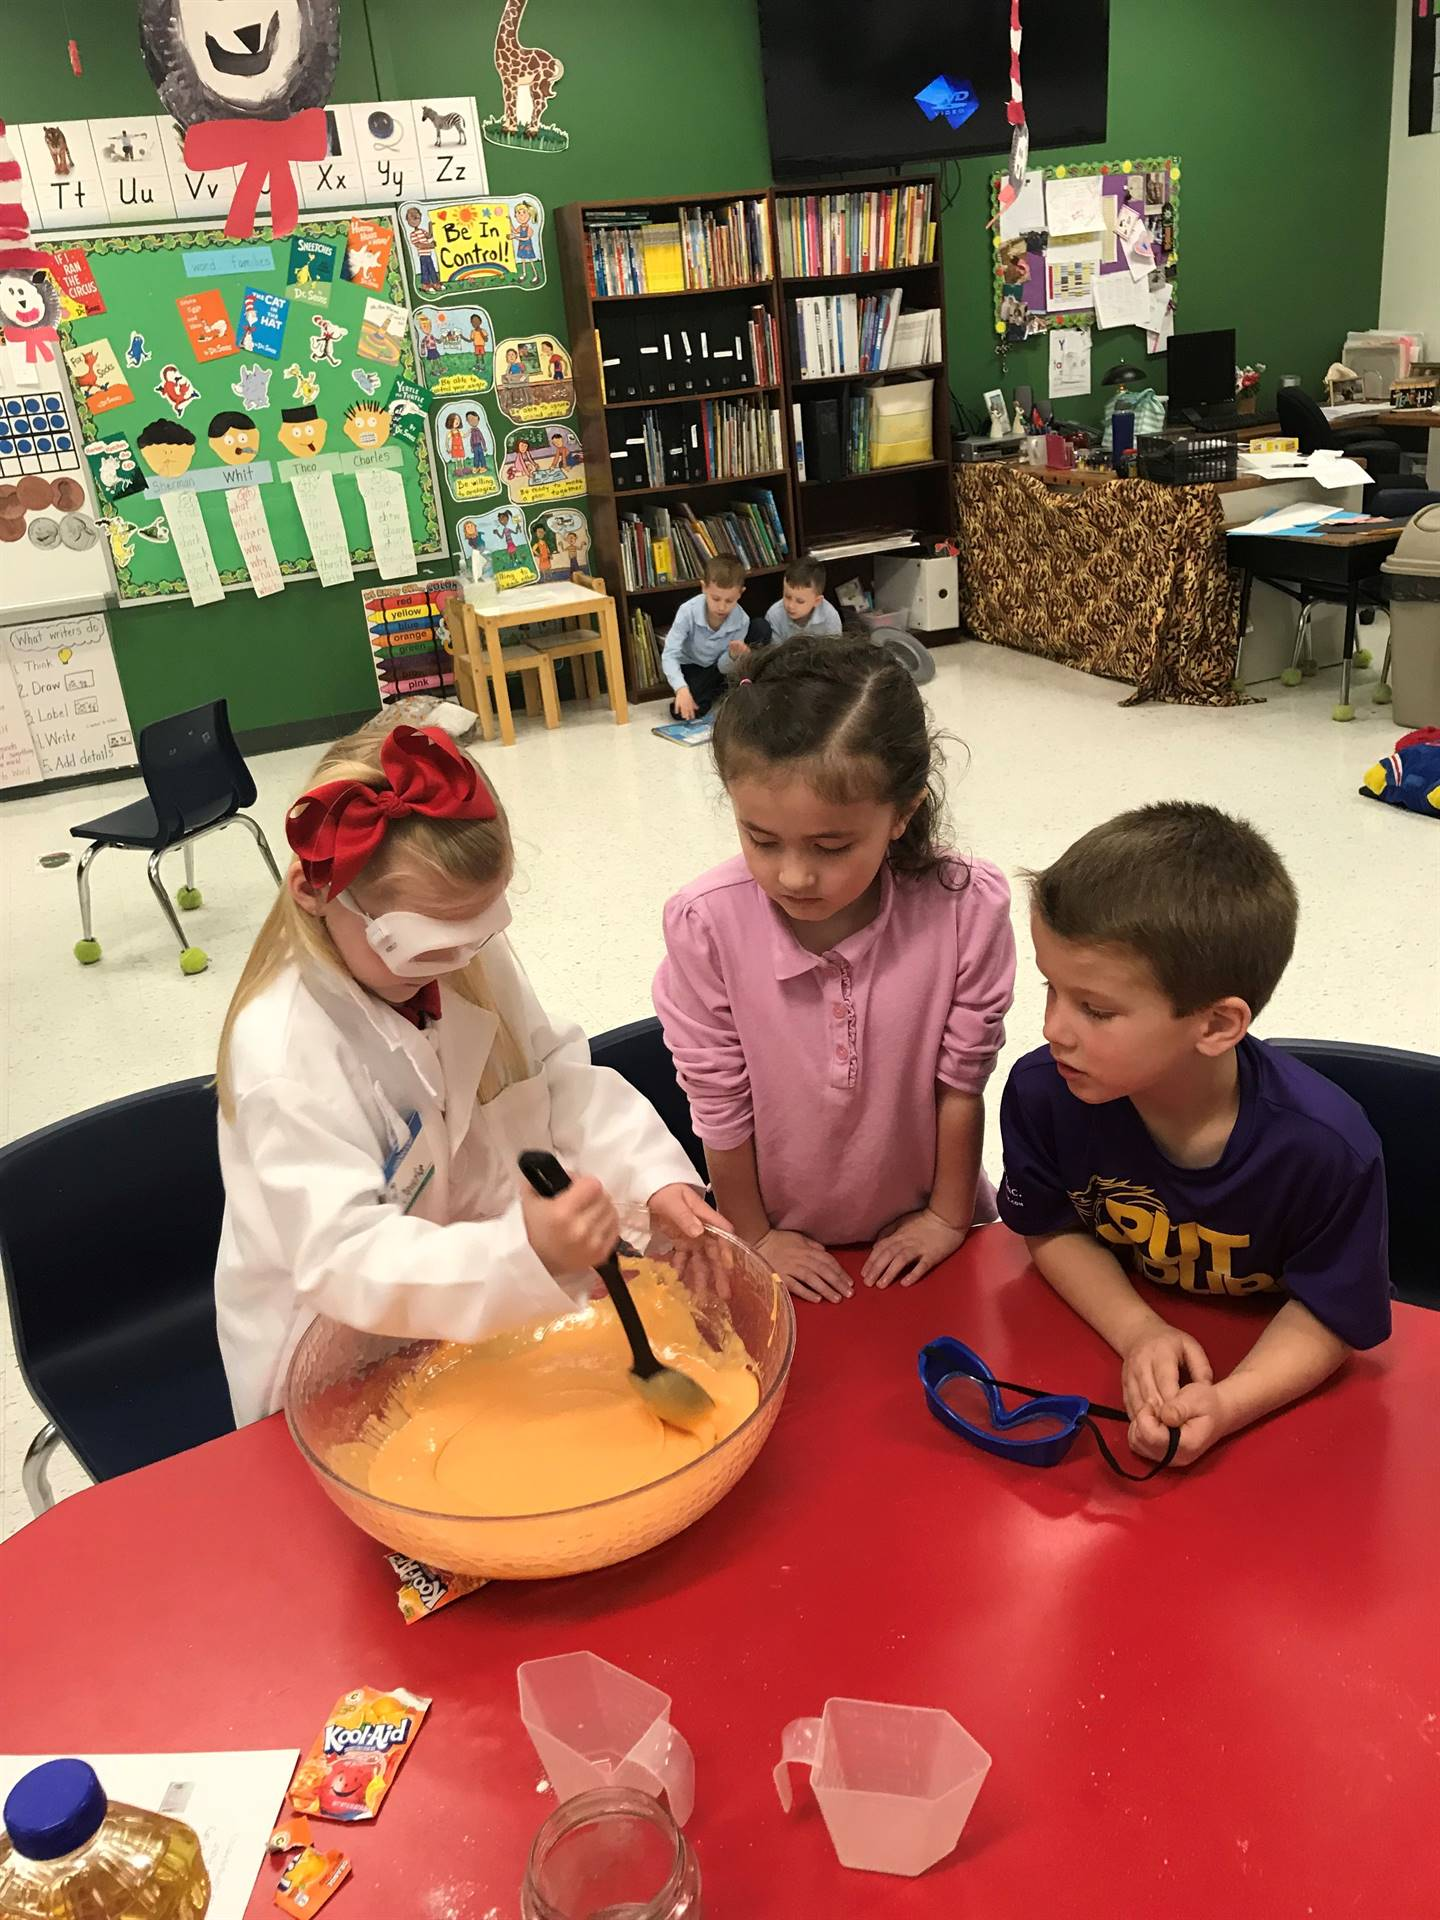 Kindergarteners mixing something in a bowl